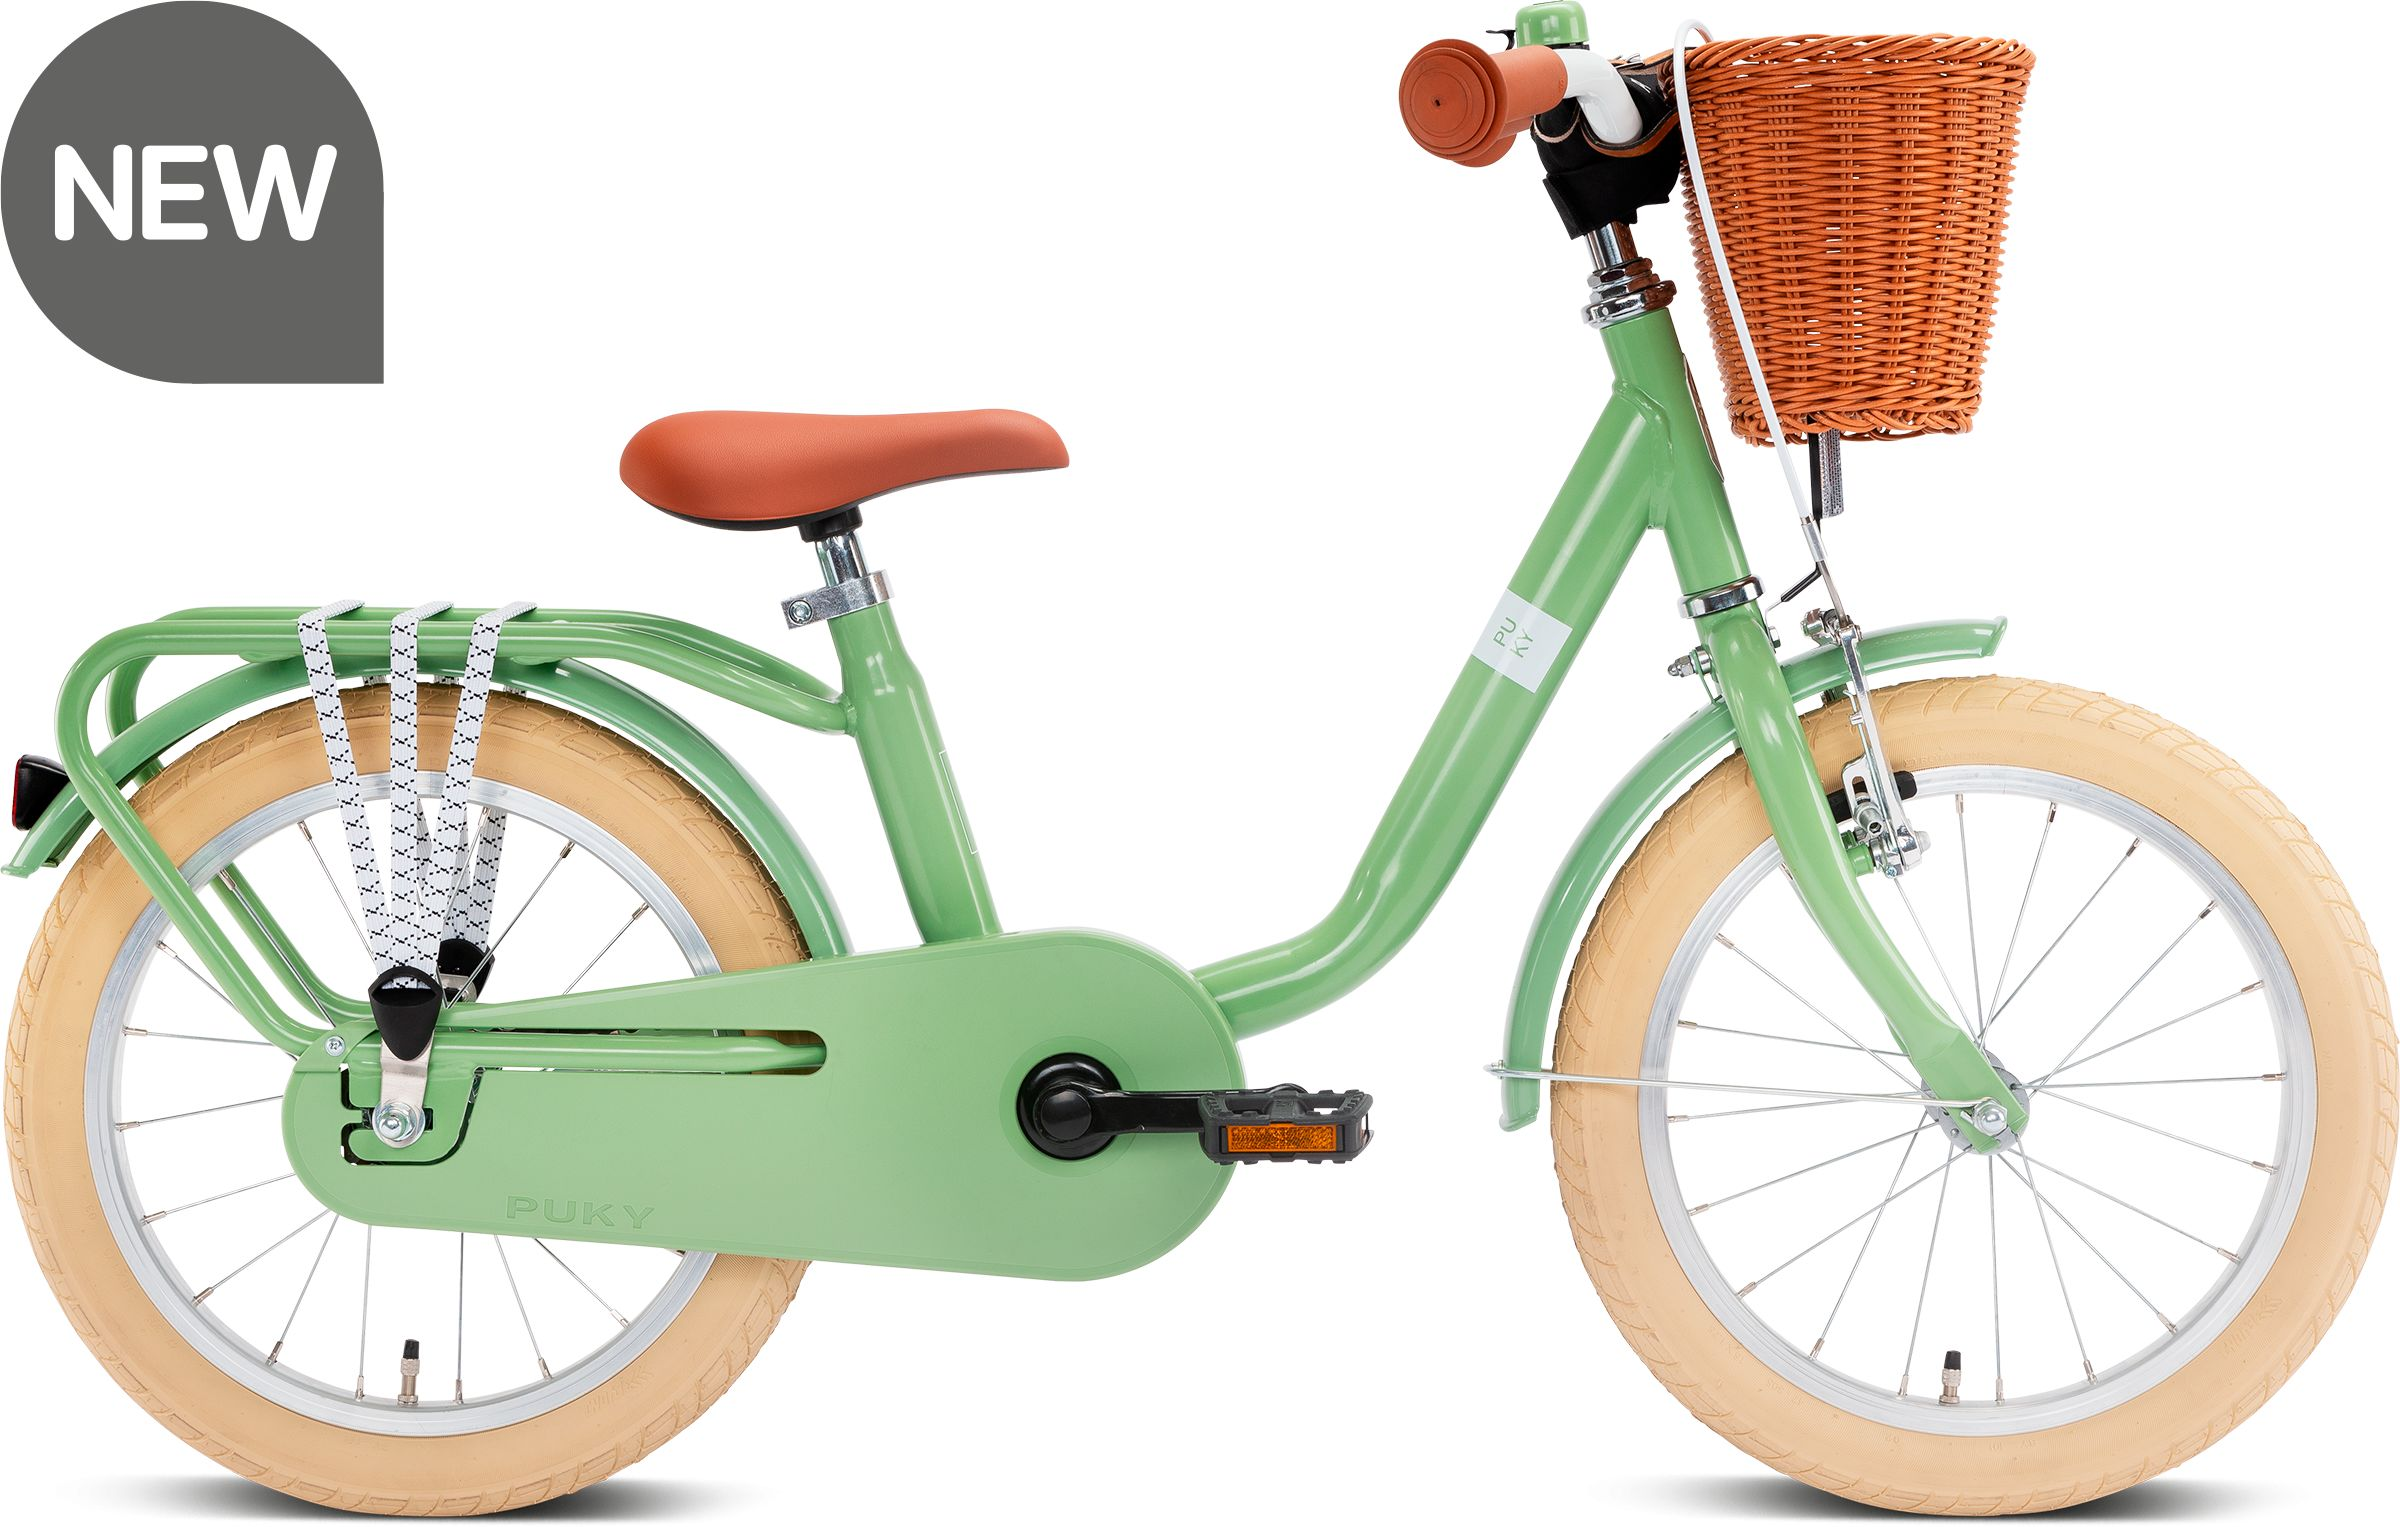 Puky rower STAL Steel Classic 16 retro green 4233